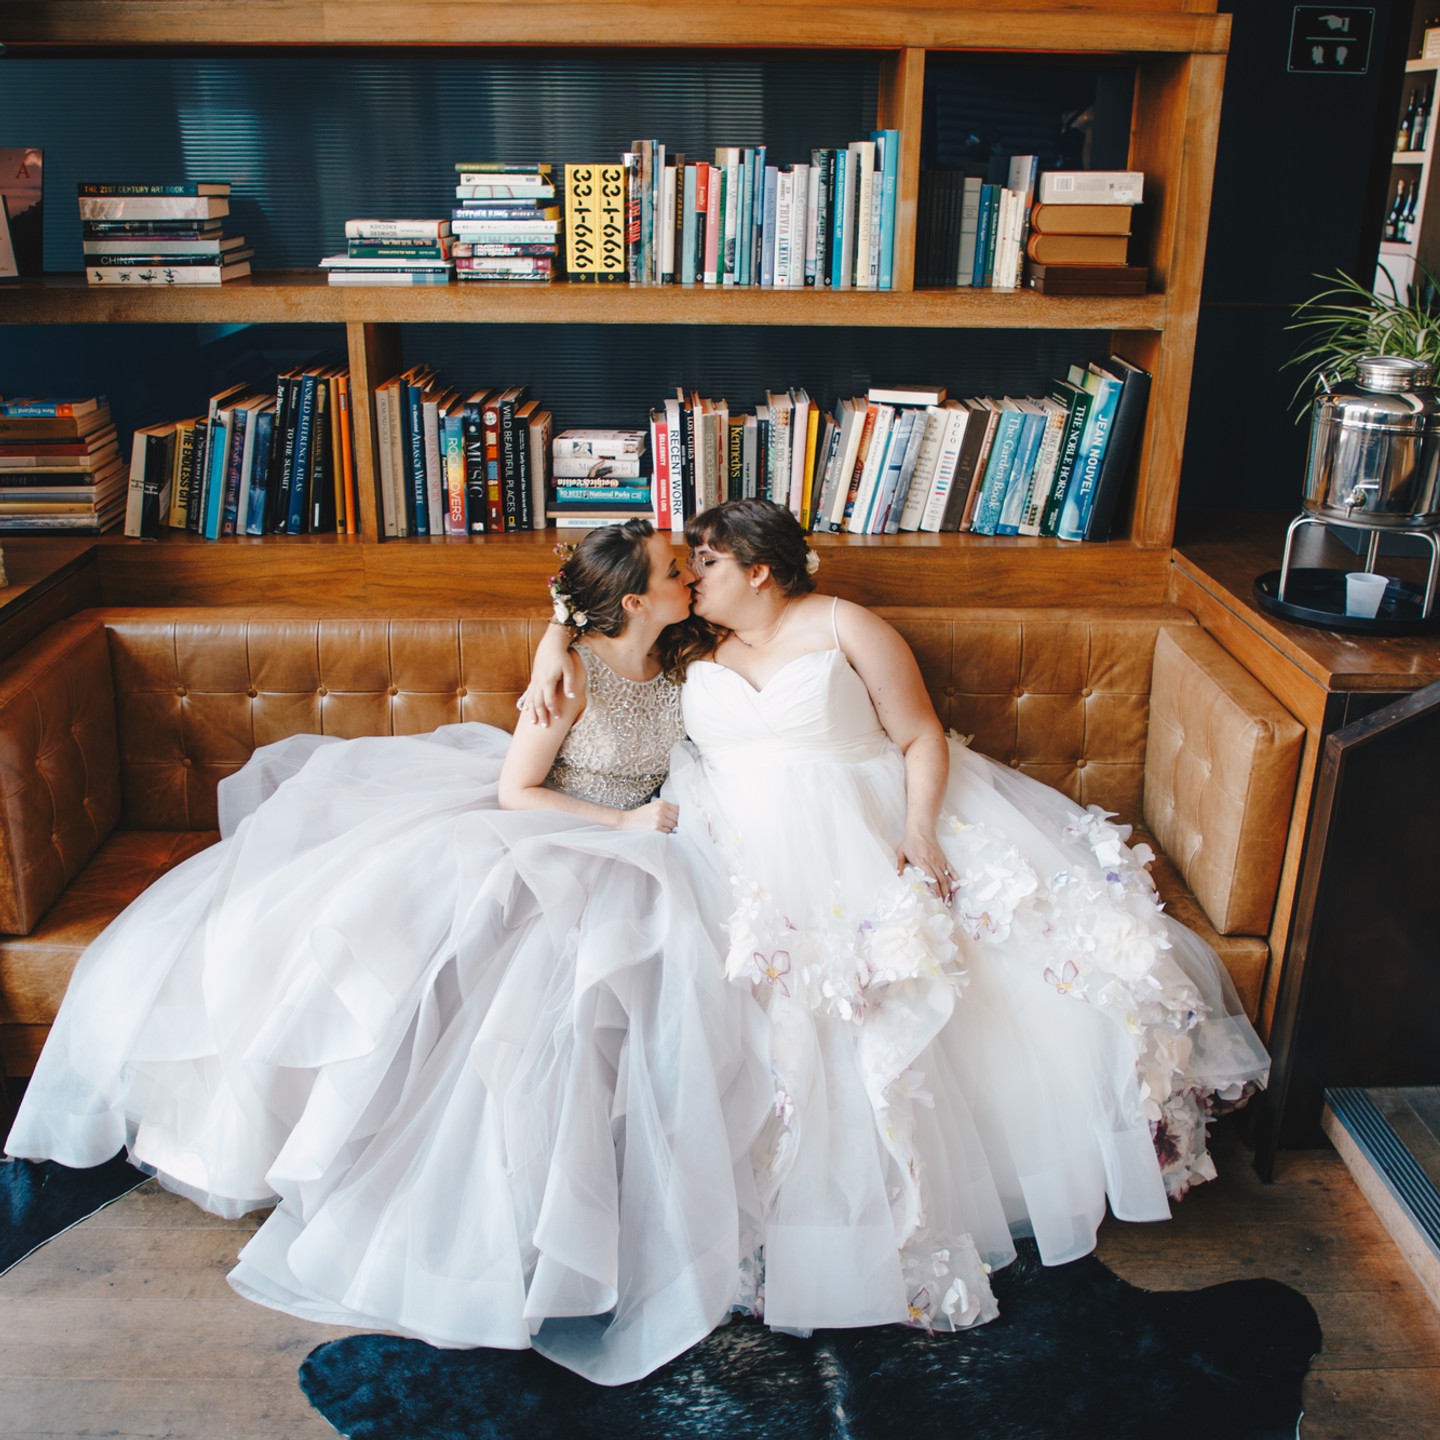 Wide shot of a library-like space with a large leather brown comfy couch that is holding our brides who sit side by side, the one with the white dress has her arm around the one with the champagne dress; their eyes are closed and they may be thinking how perfect a space since books are part of their story.